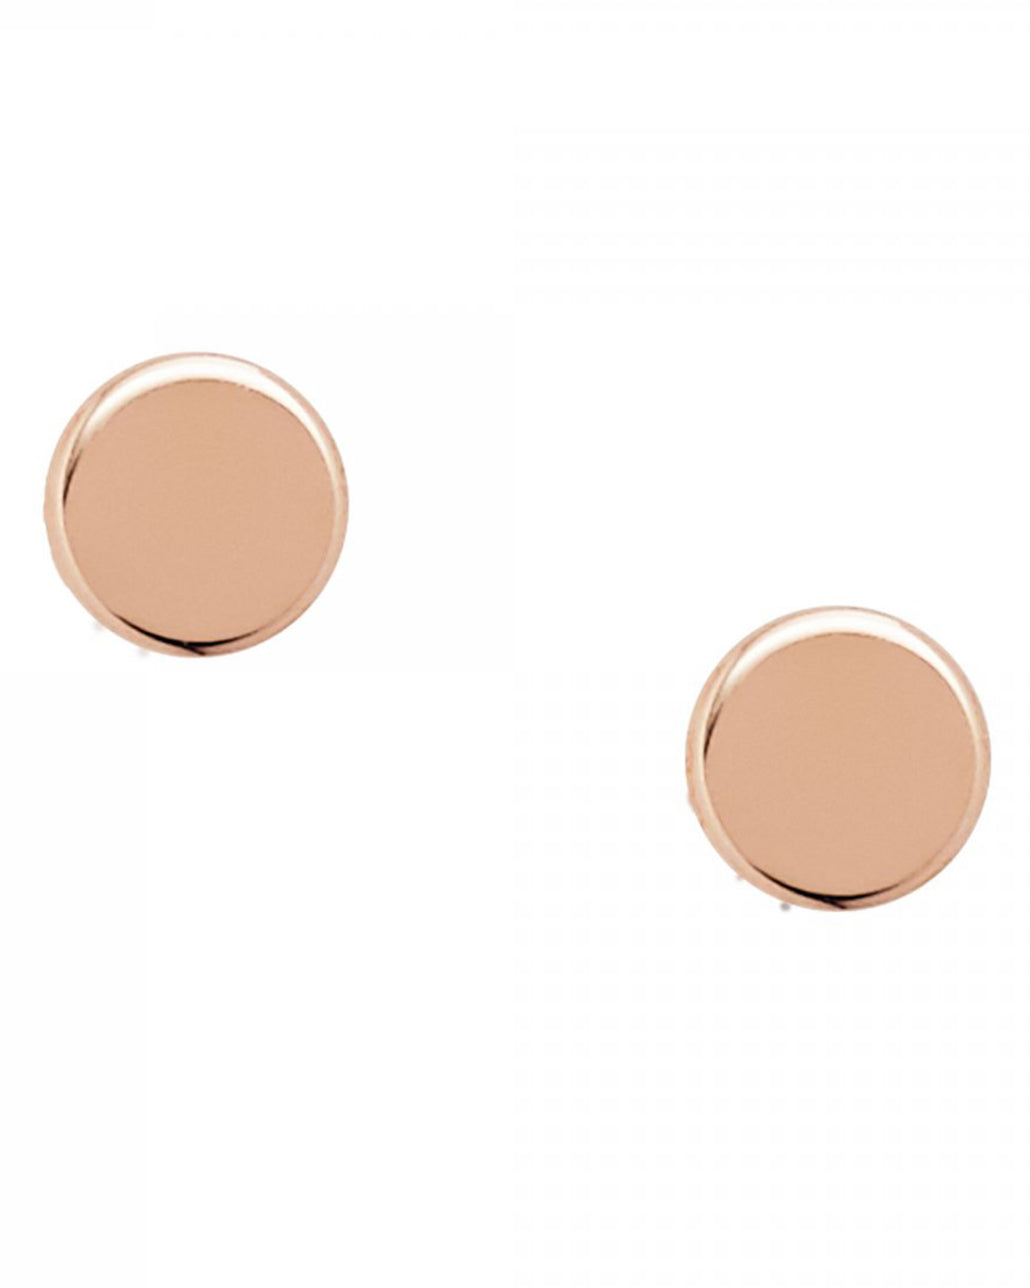 Fossil Rose Gold Plated Tiny Round Stud Earrings